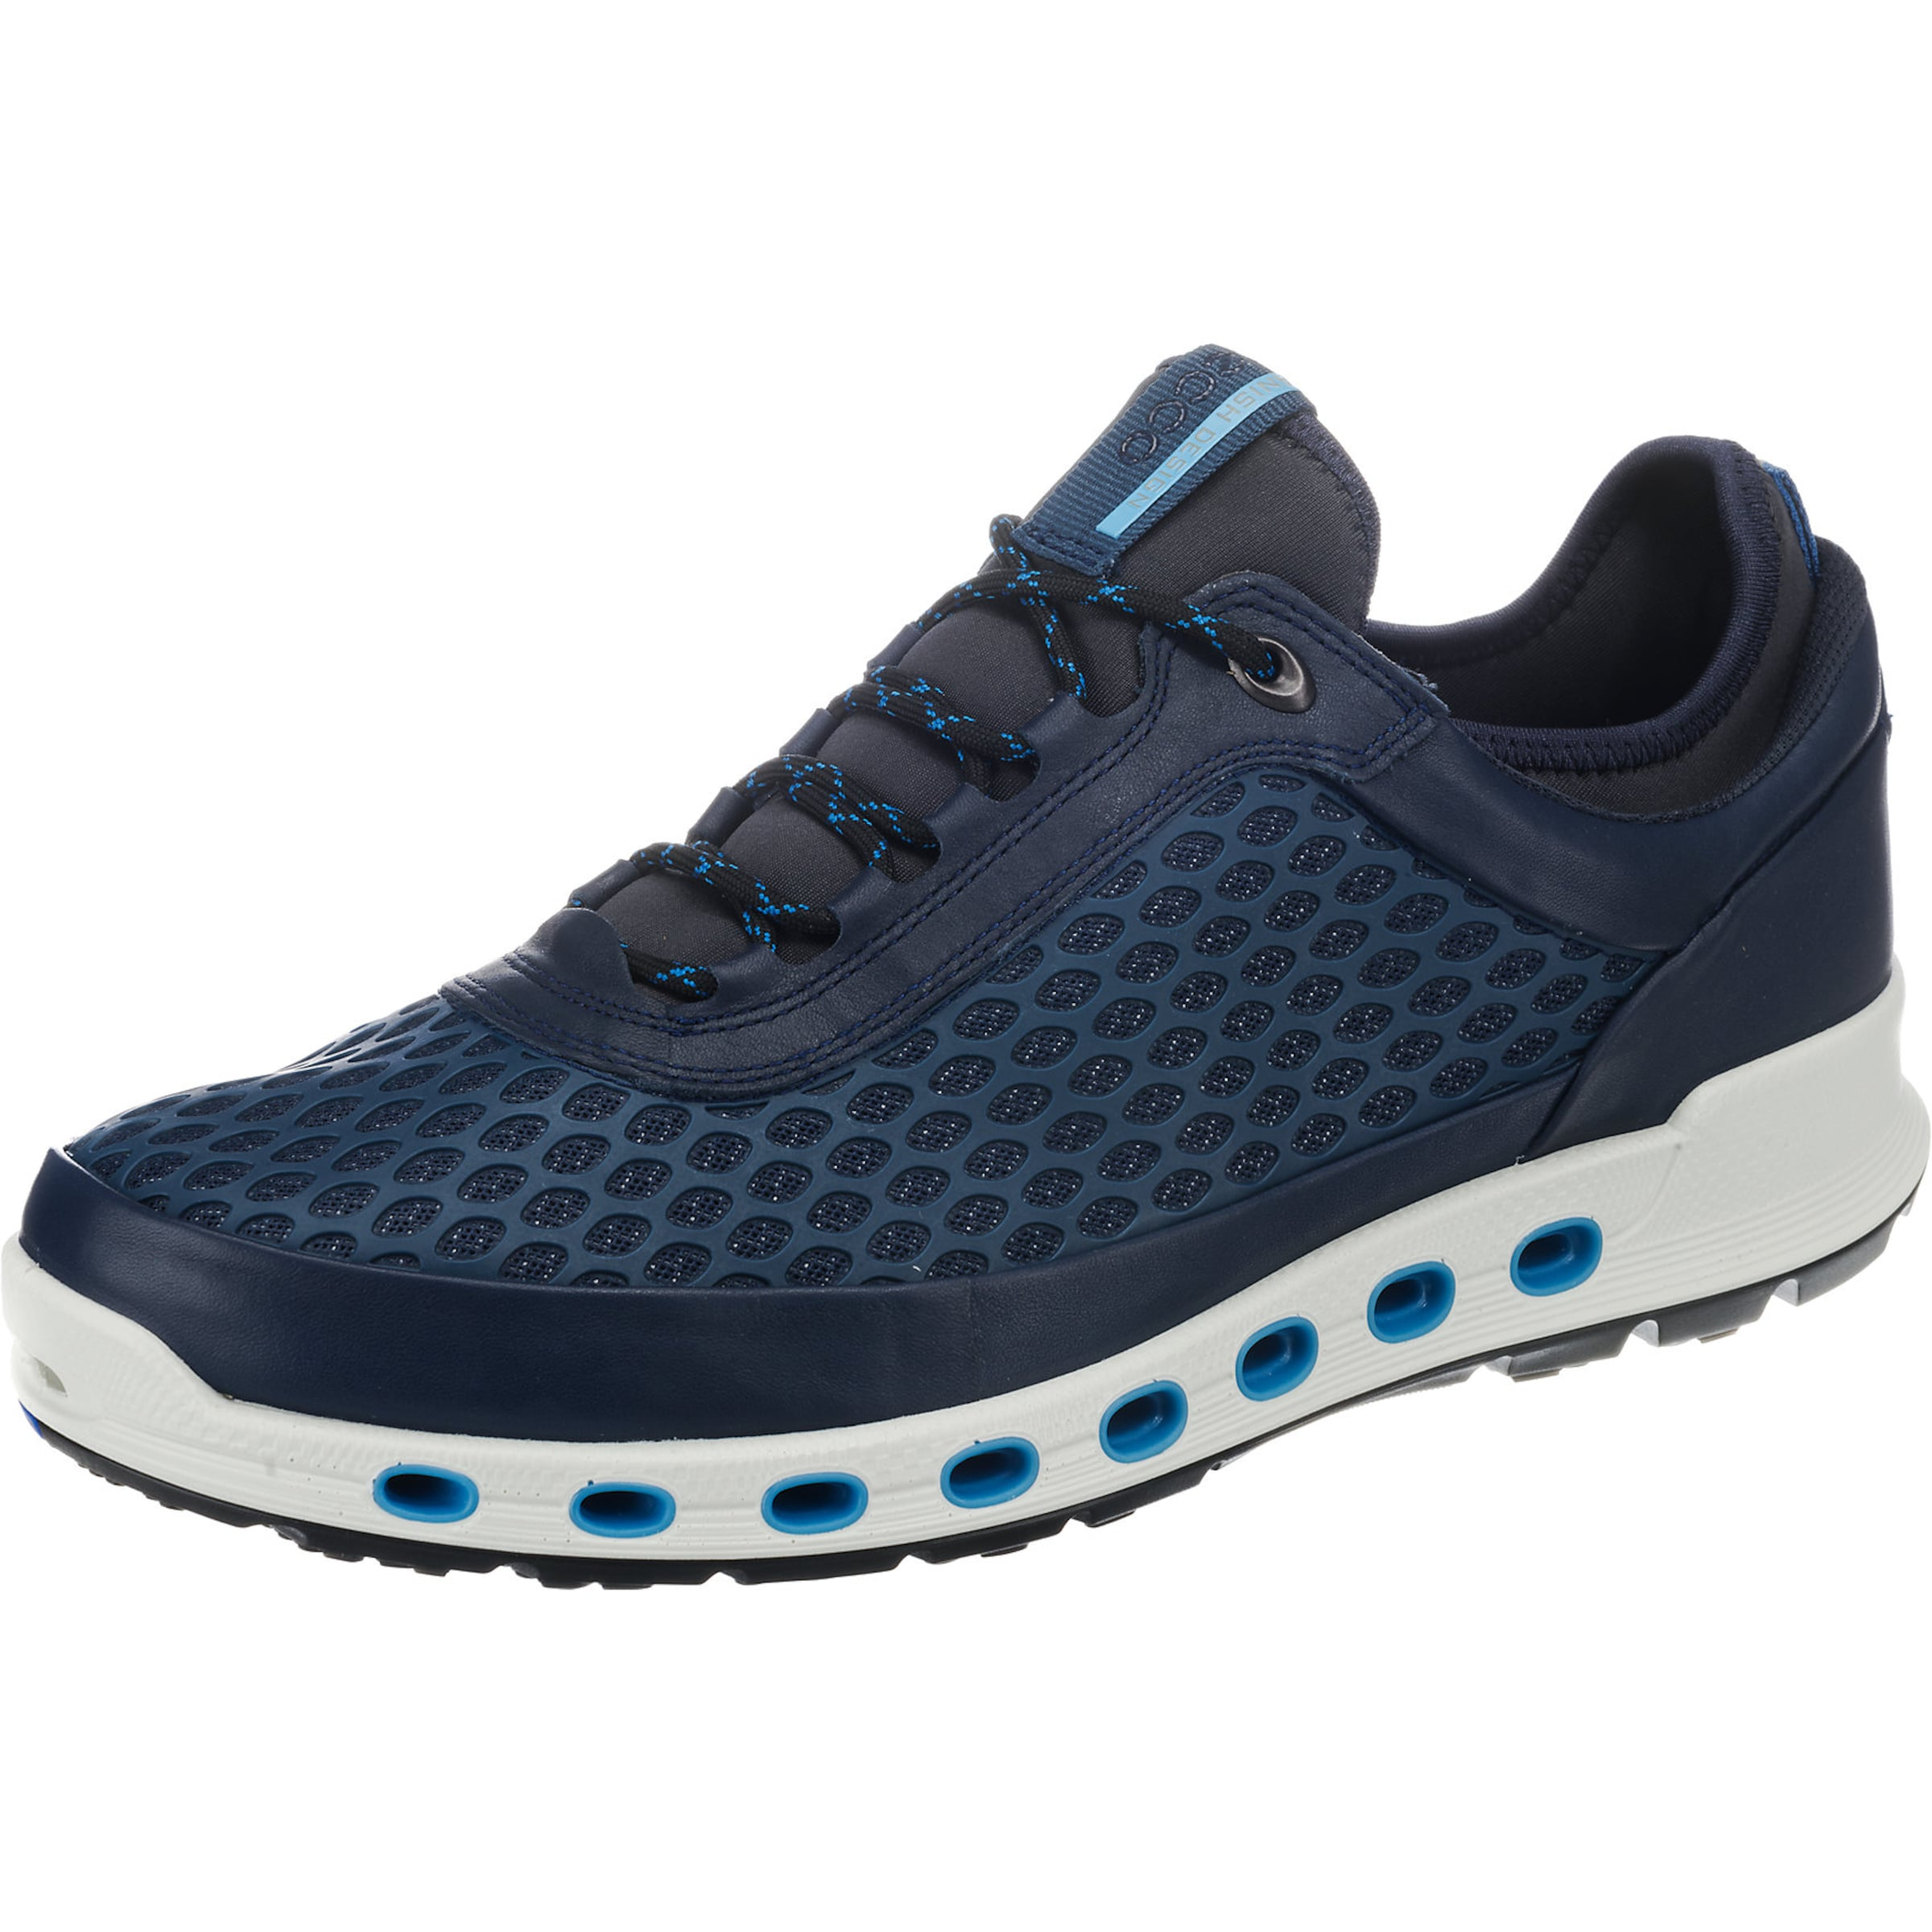 ECCO Sneakers Low Cool 2.0 Hohe Qualität